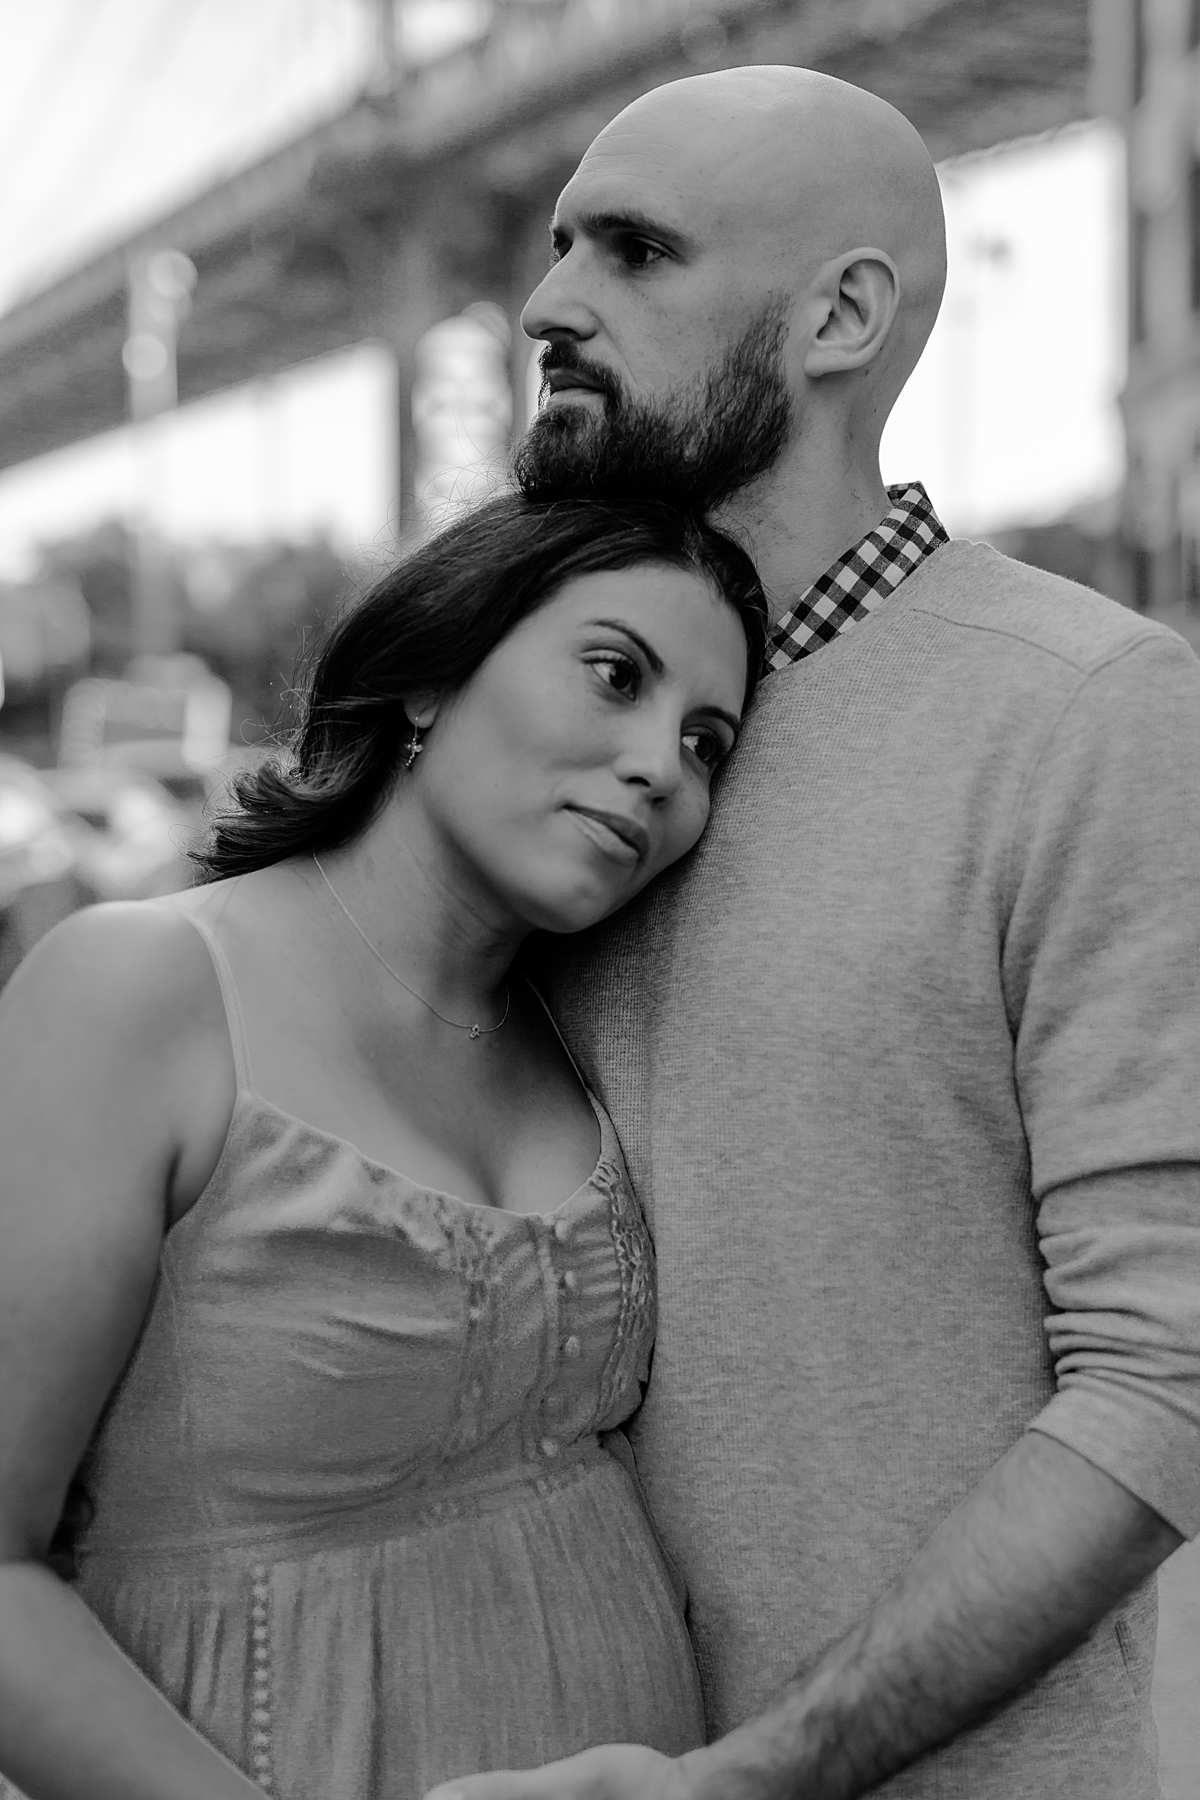 close up black and white portrait of married couple standing in the middle of busy city street with bridge in the background while husband touches wife's beautiful pregnant belly during maternity photo session with orange county family photographer krystil mcdowall photography